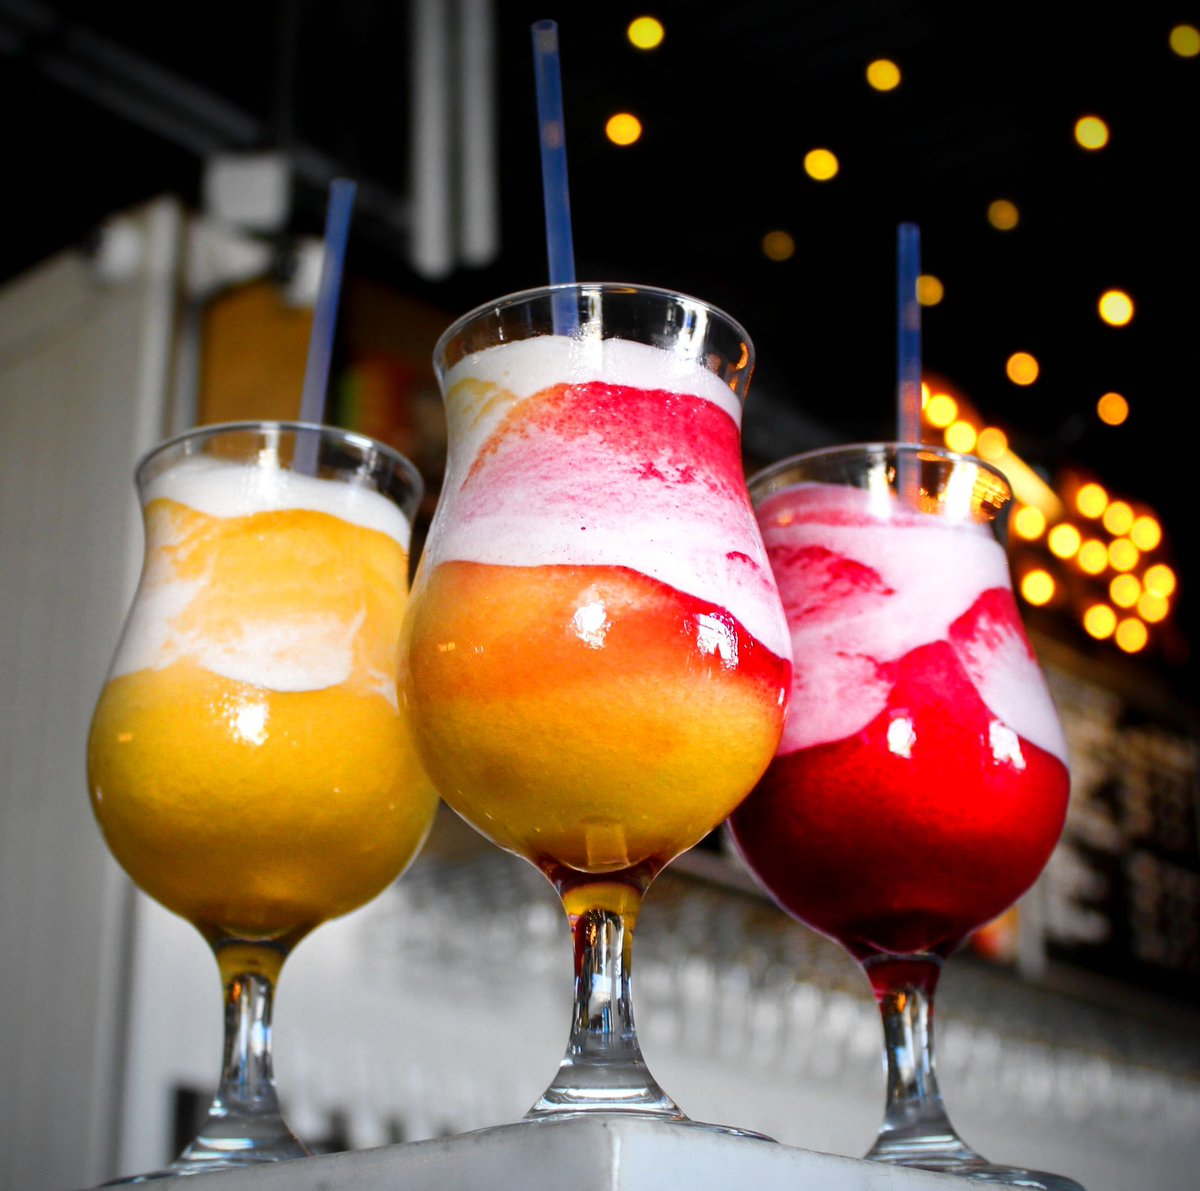 Lomaland is totally slinging Poolside (DIPA w/ coconut, mango, lime, vanilla, & pineapple) & Tonic of Remembrance (super-Berliner w/ strawberries, blackberries, raspberries, & maple syrup) slushies. The more you know. https://t.co/Qr3hShOOkO